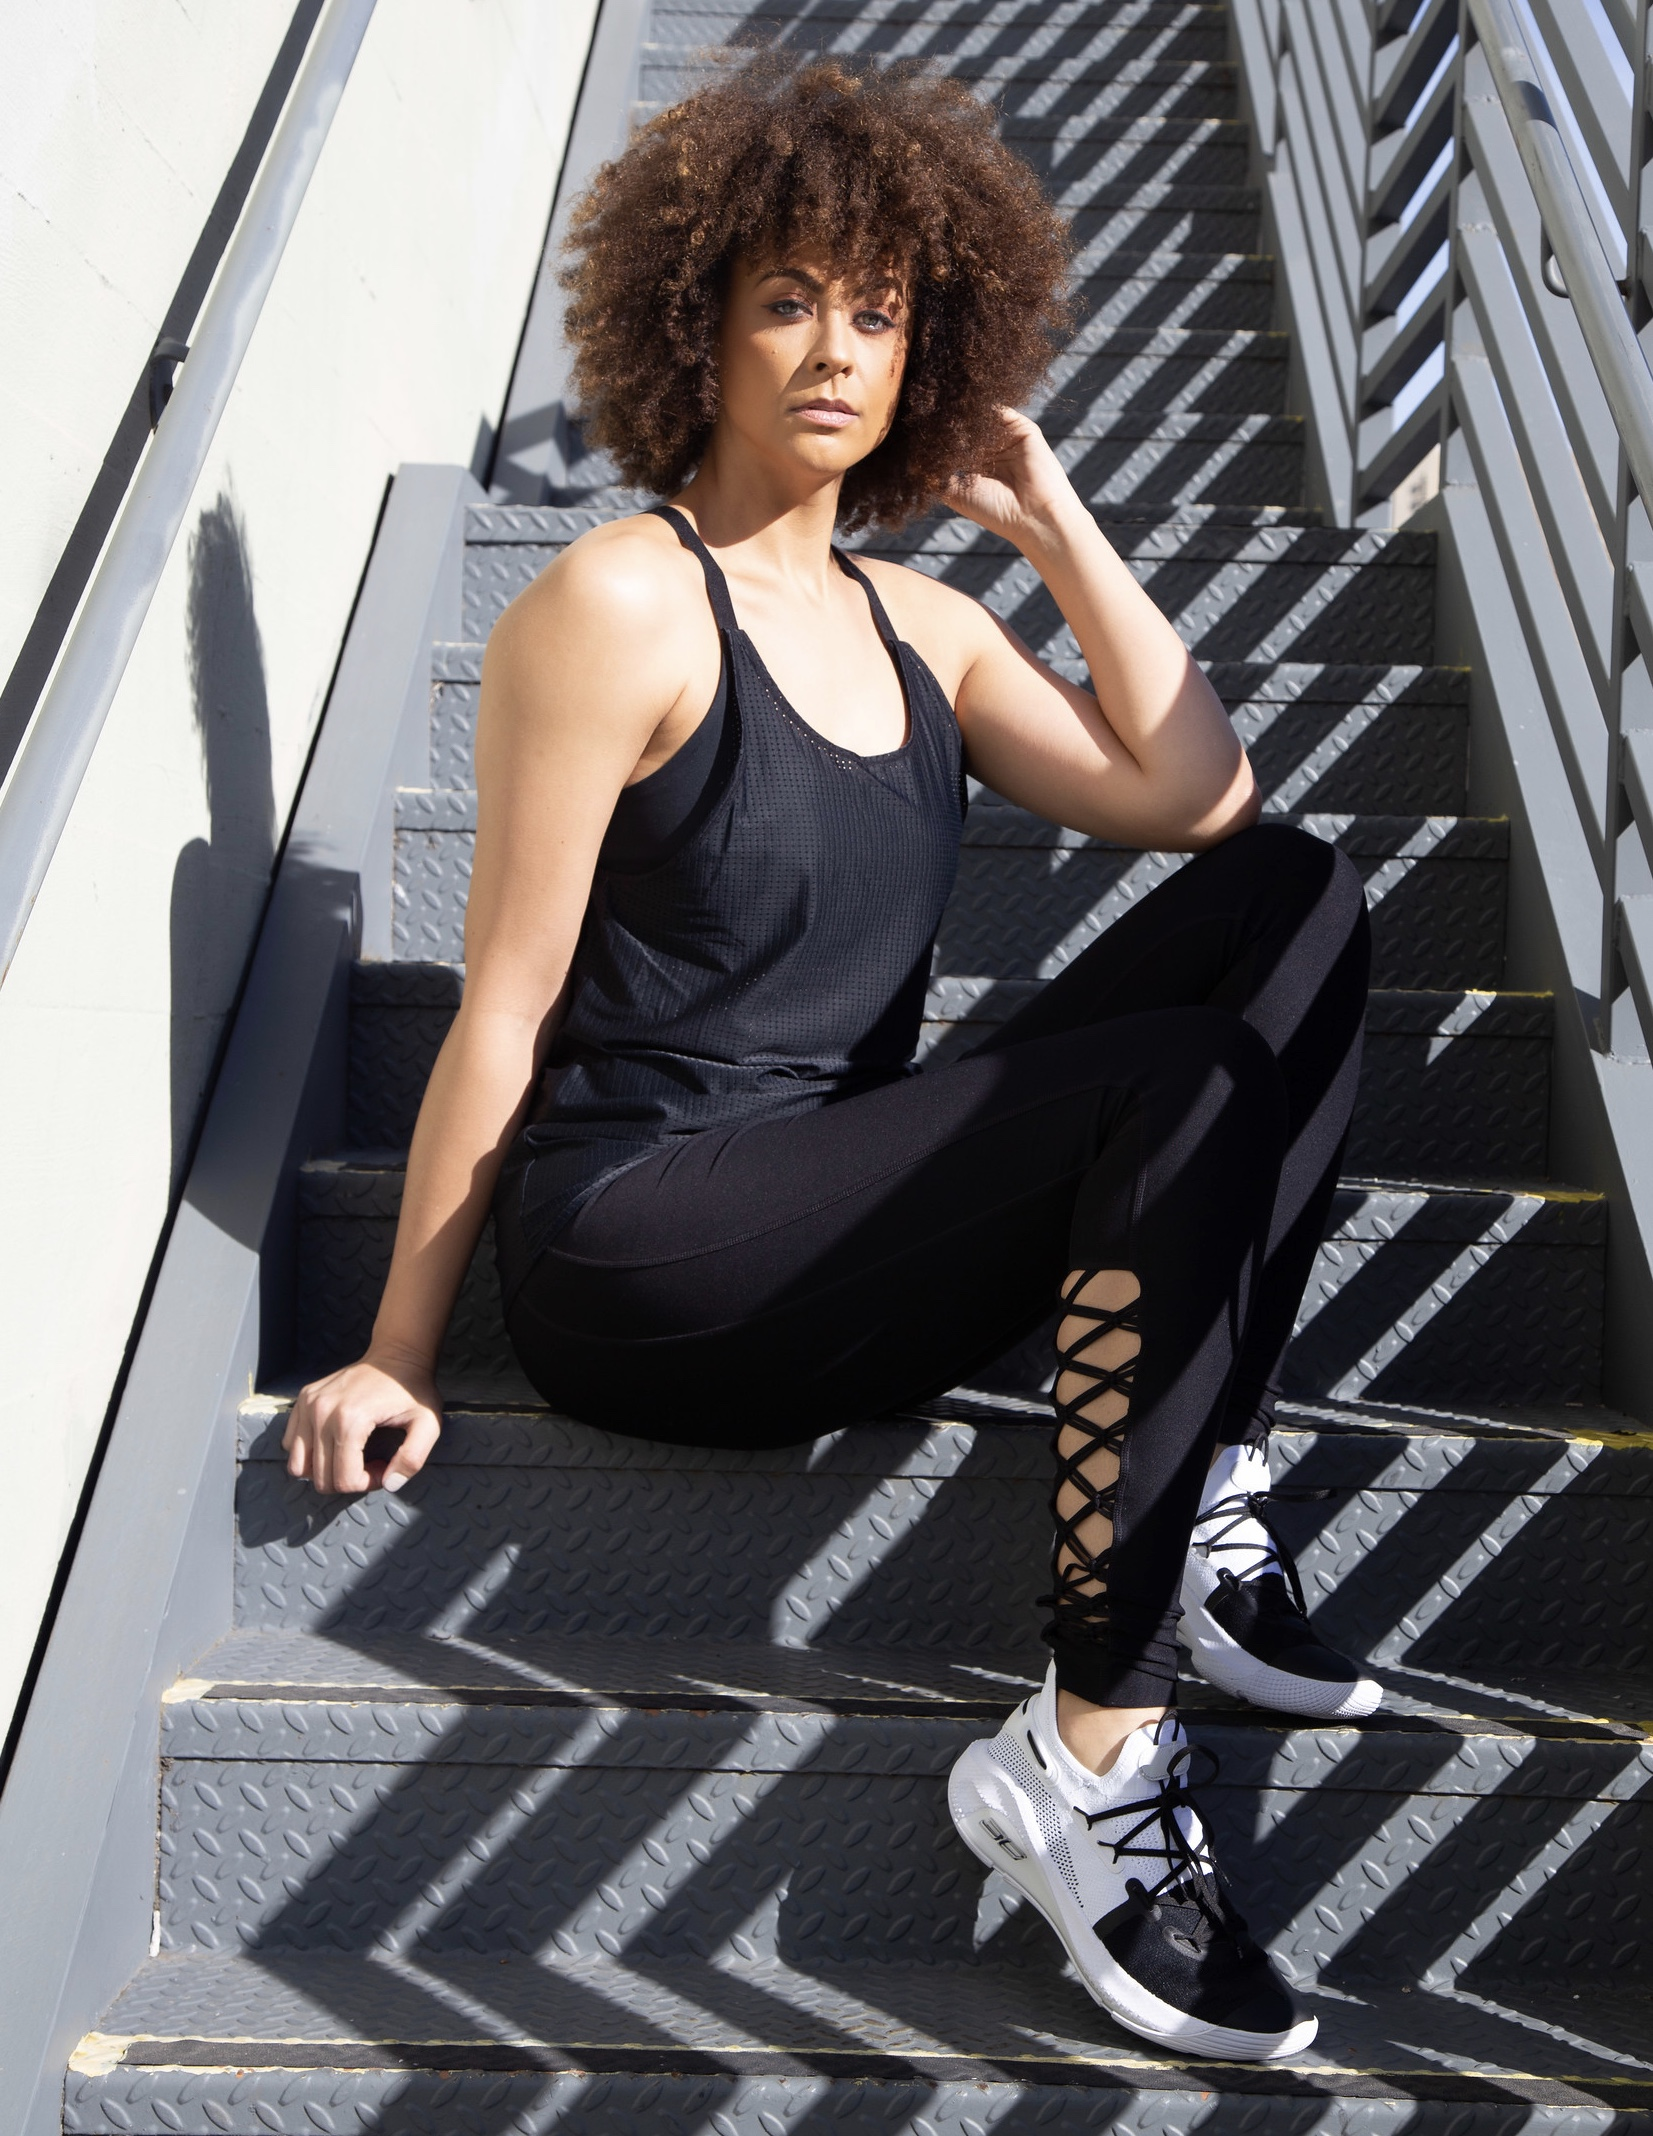 Photos by Lakeela Smith     MPG X LTS Revitalize High Waist Legging (shown in size M)      MPG X LTS Interlace Sports Leggings (shown in M)      MPG X LTS Re-Energize Mesh Overlay Tank (shown in size M)      UA Curry 6 (shown in size Men's 11)